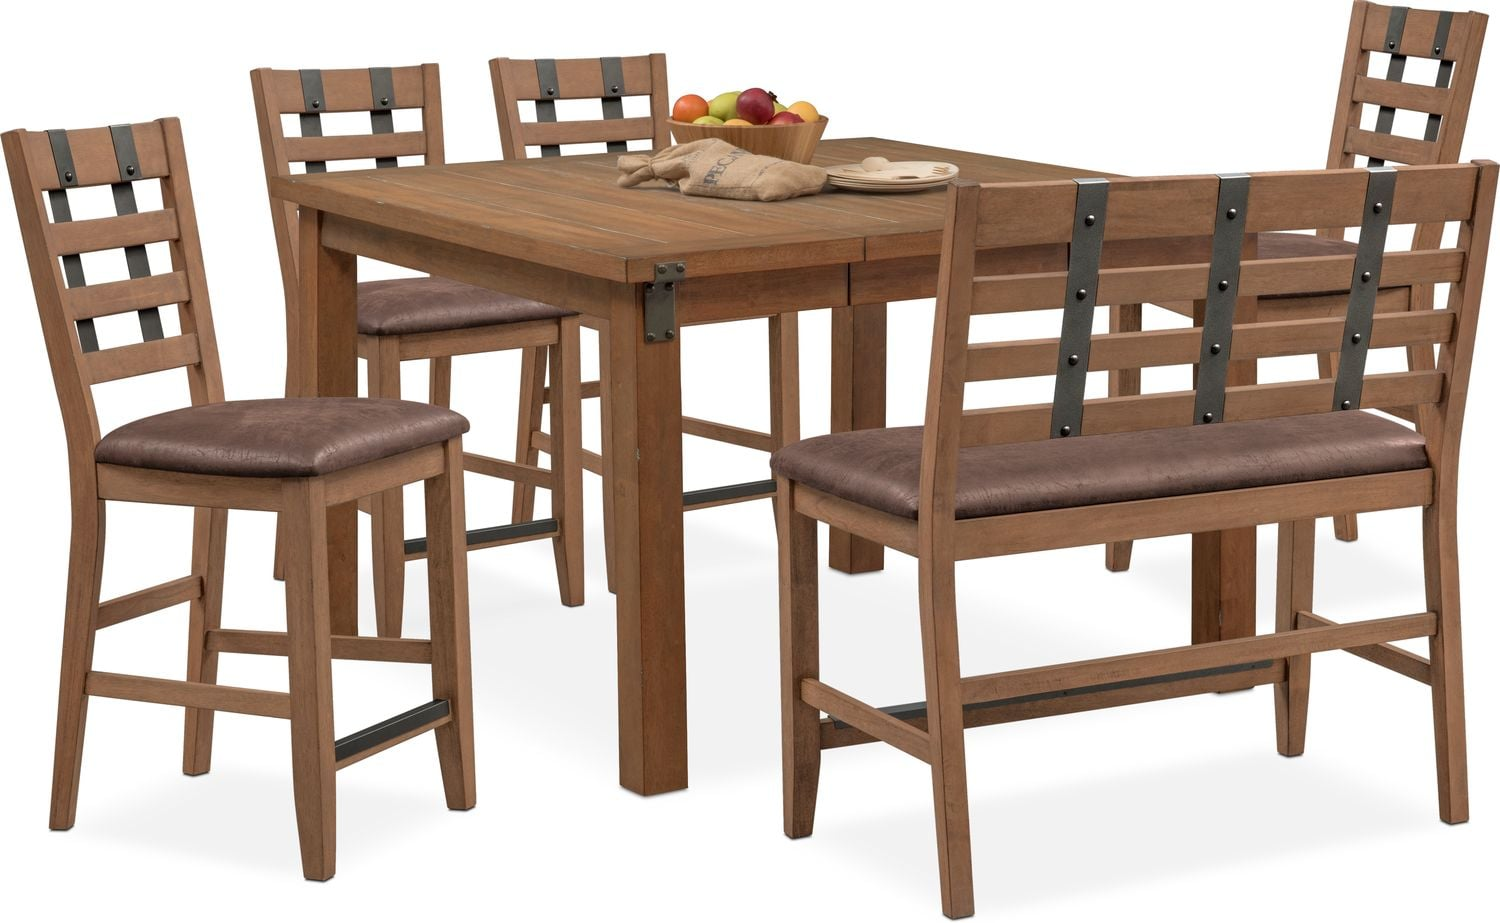 Tremendous Hampton Counter Height Dining Table 4 Stools And Bench Beatyapartments Chair Design Images Beatyapartmentscom